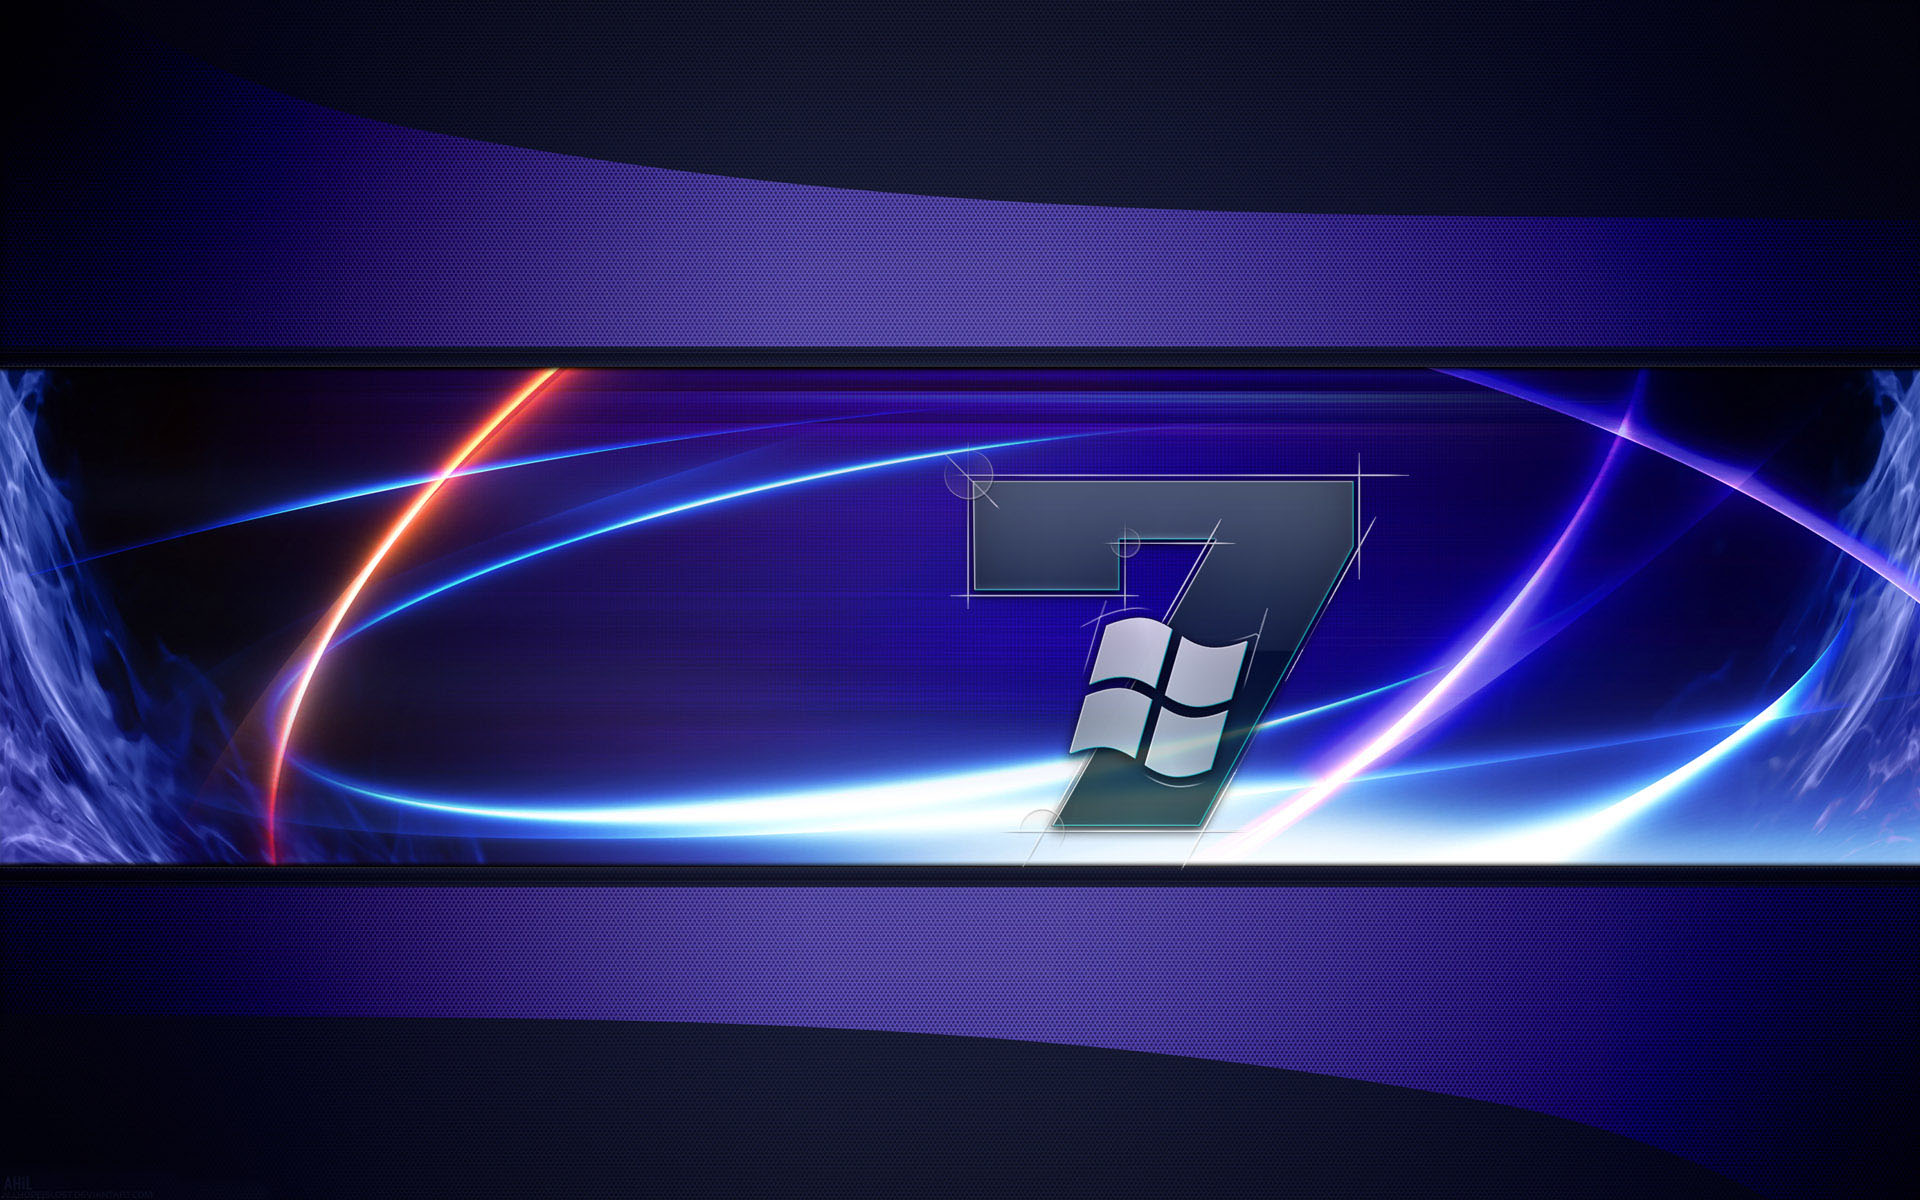 live wallpaper windows 7 ultimate - wallpapersafari